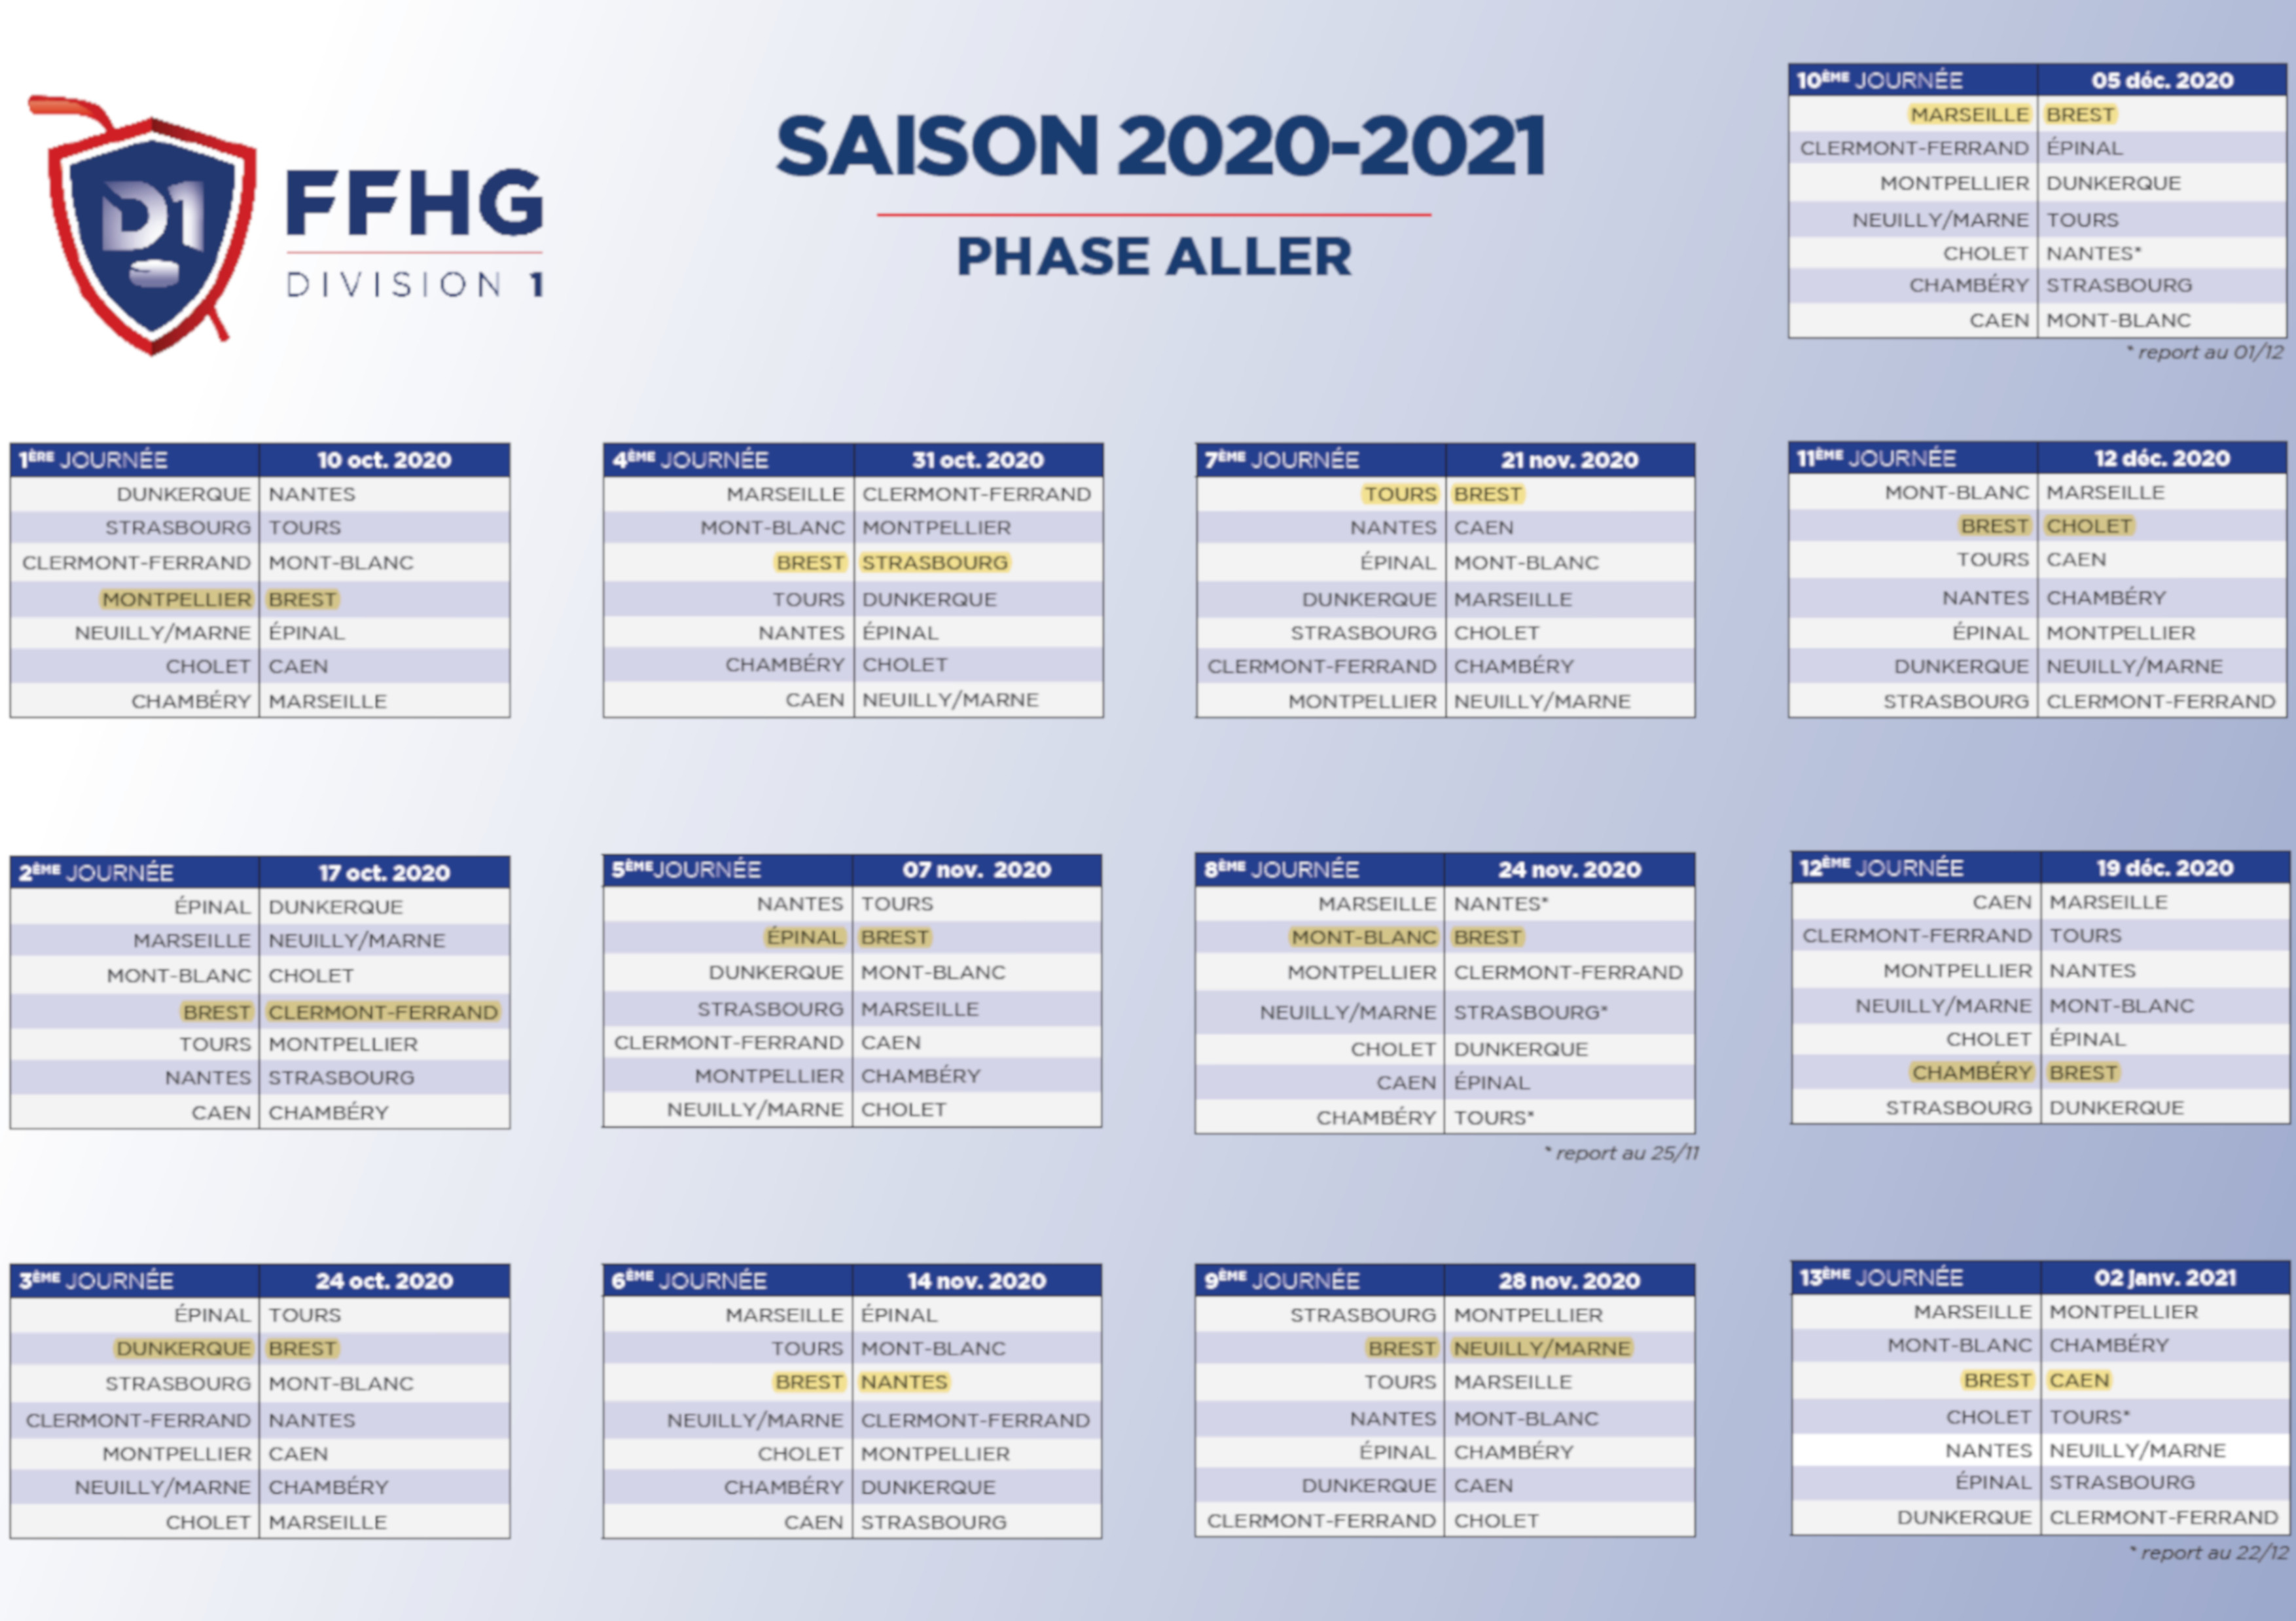 Calendrier D1 2020-2021 phase aller